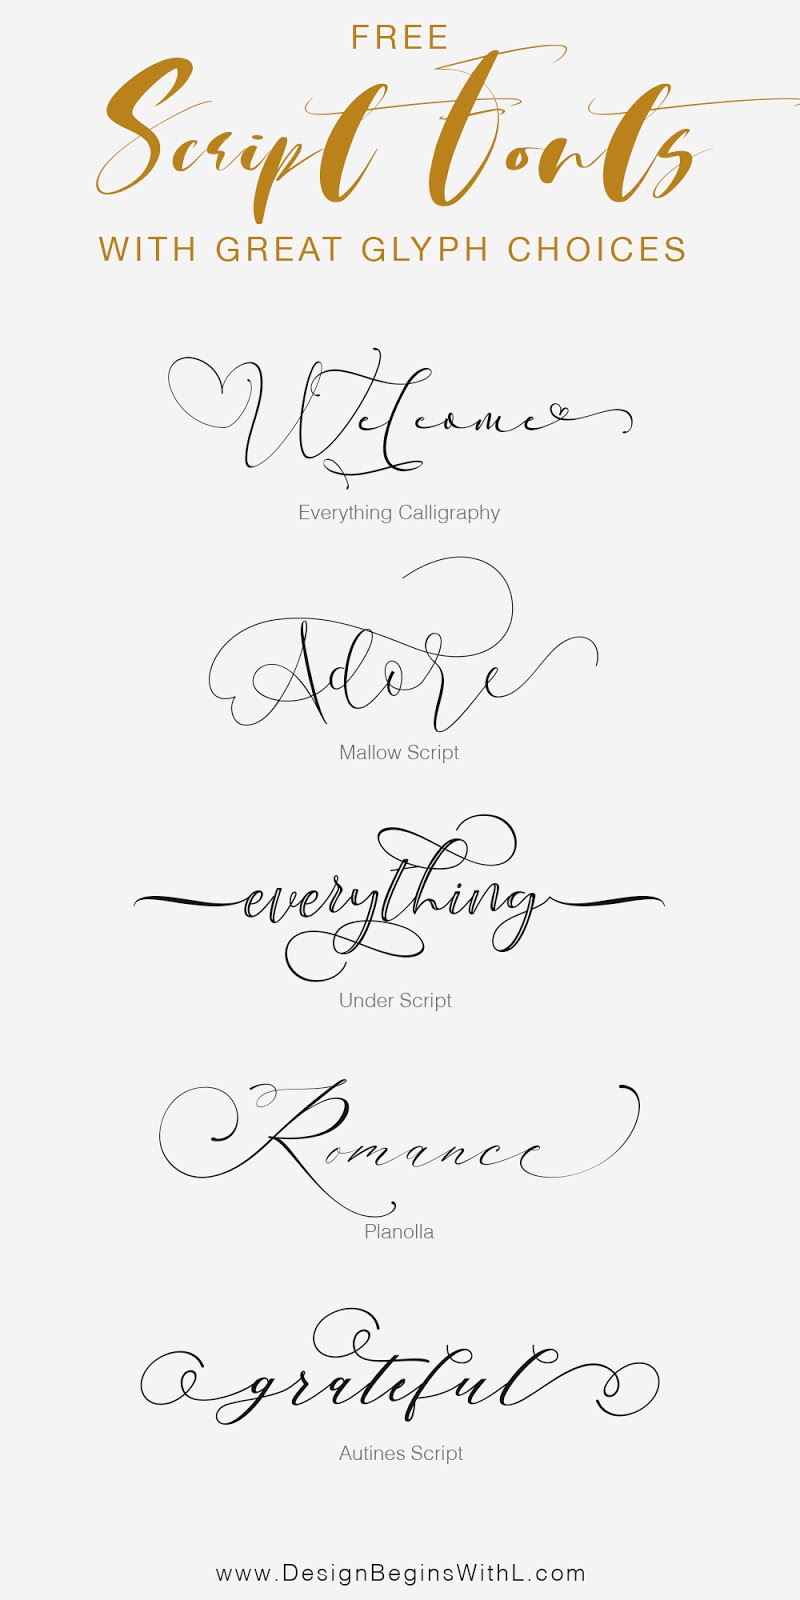 Free Script Fonts with Great Glyph Choices